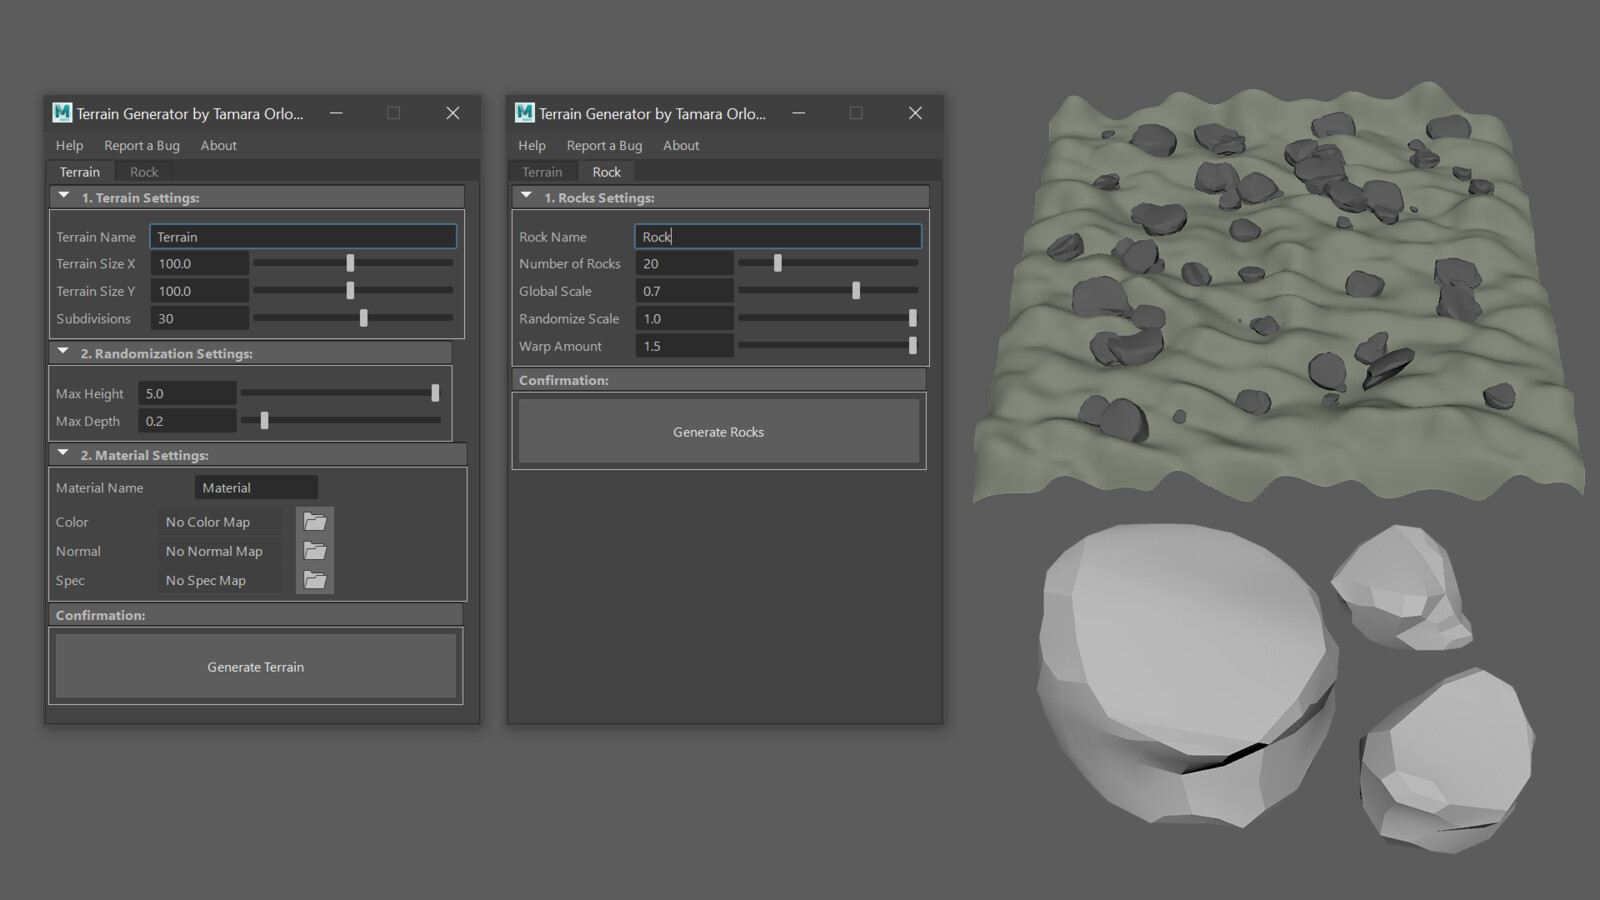 Final UI and generated terrain and rocks